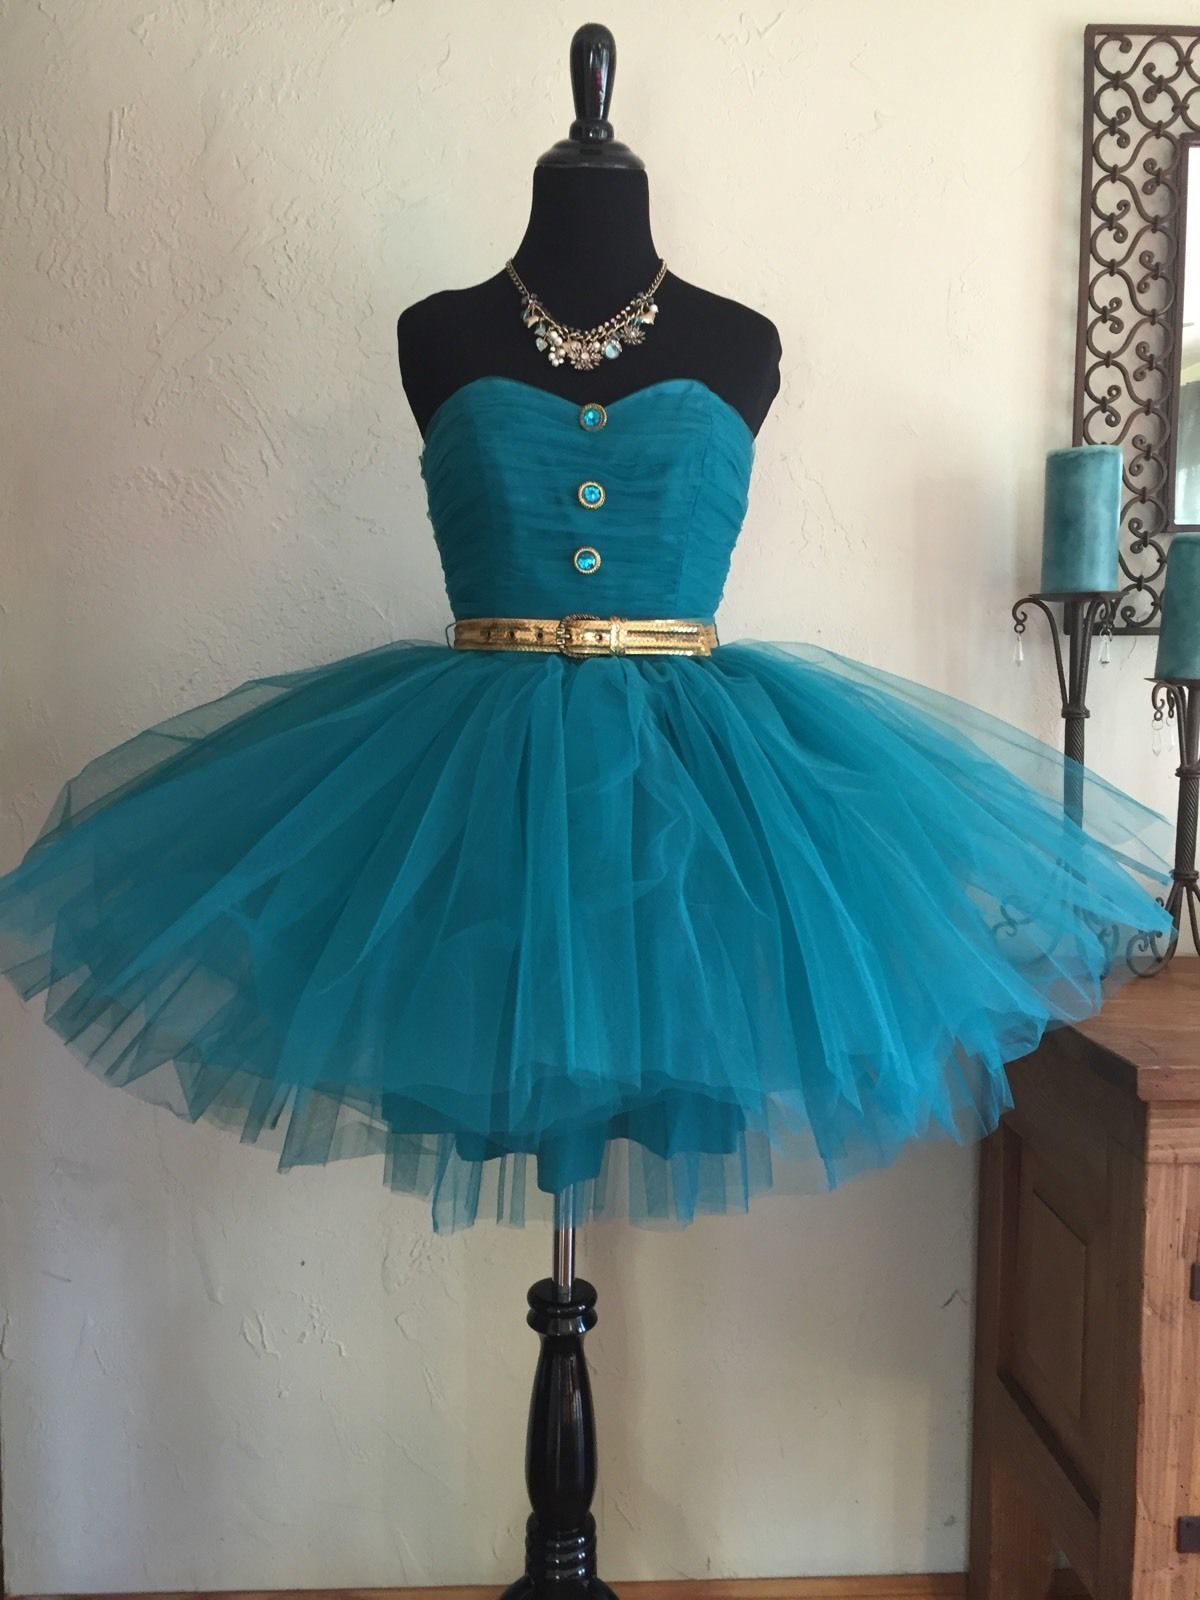 2 Day Sale Womens Sz 4 Betsey Johnson Tulle Tutu Party Dress Teal ...